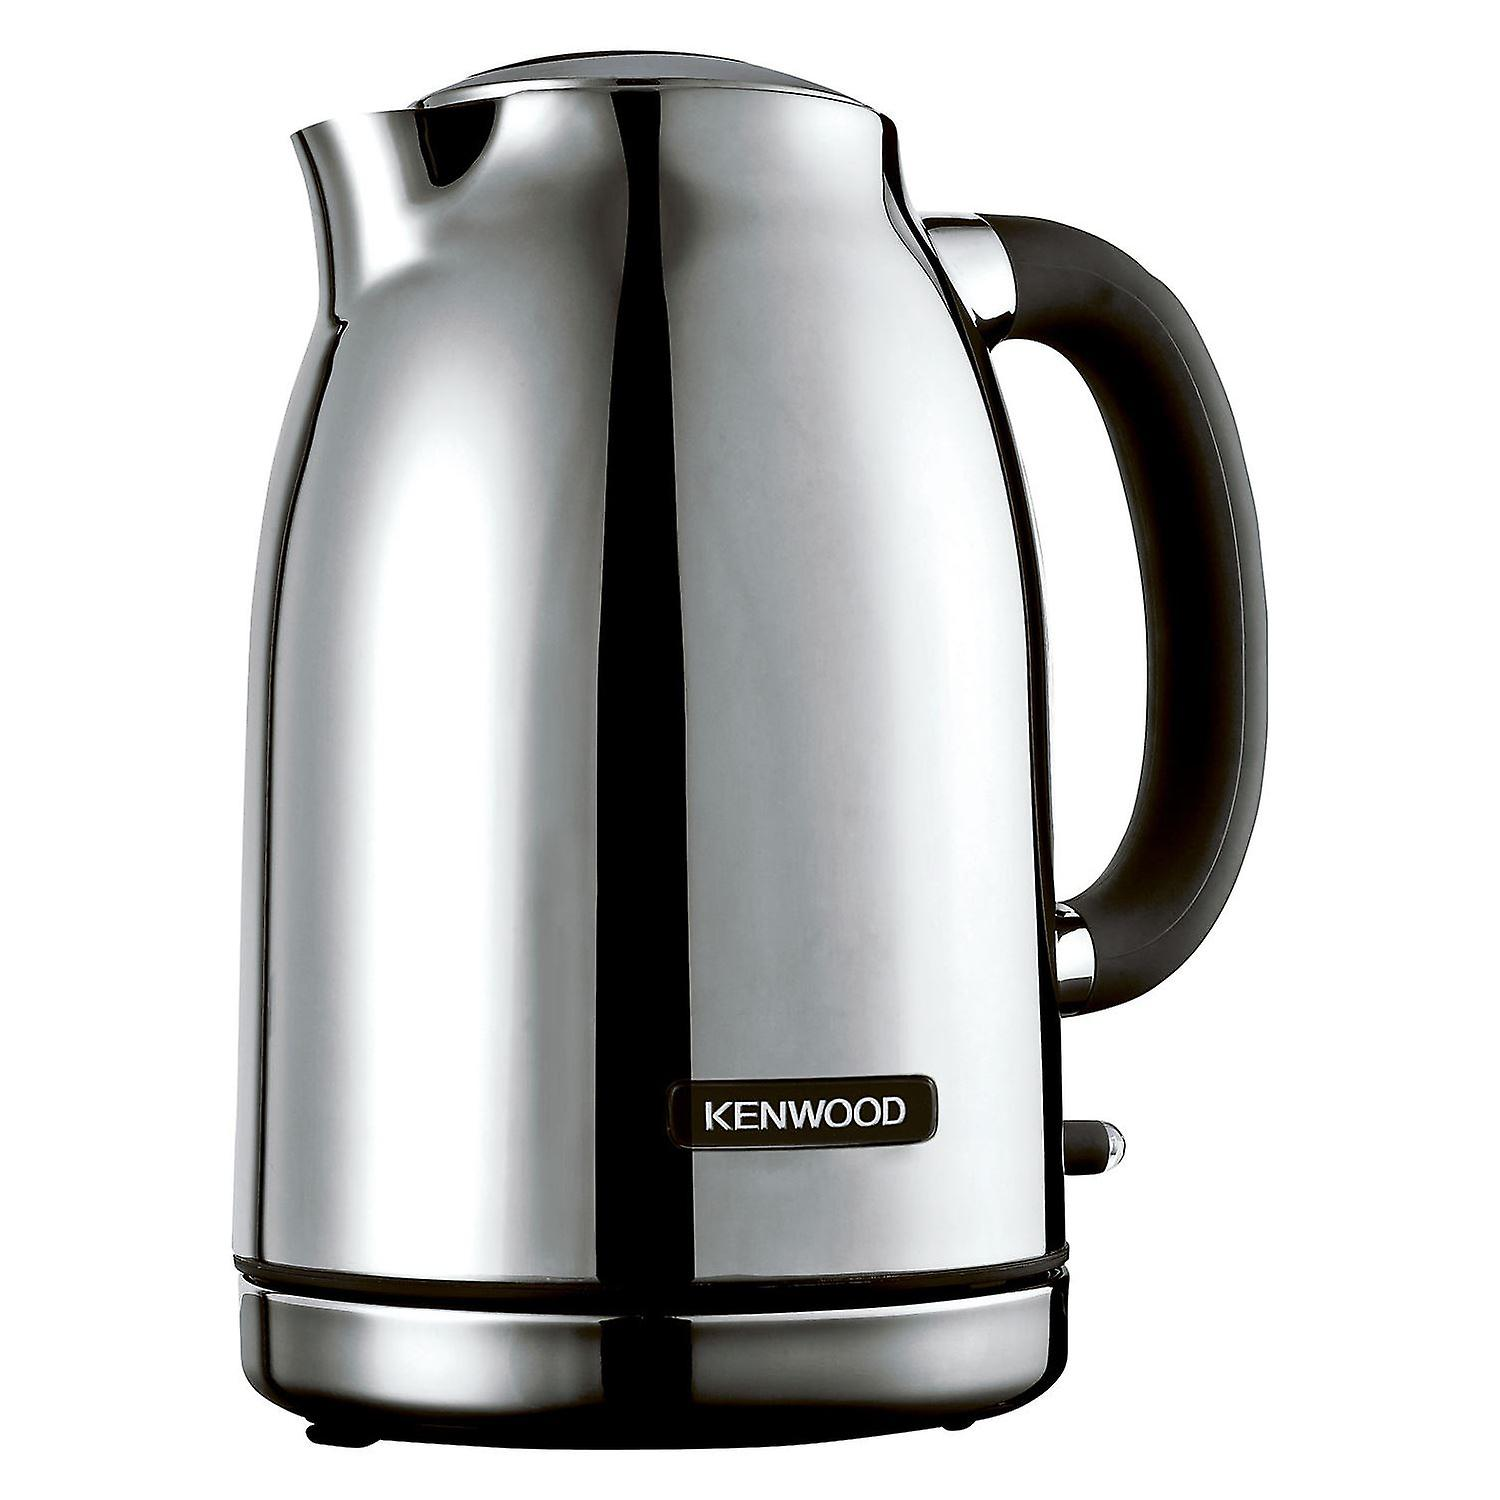 Kenwood SJM550 Polished Stainless Steel 2000W 1.5L Turin Electric Jug Kettle